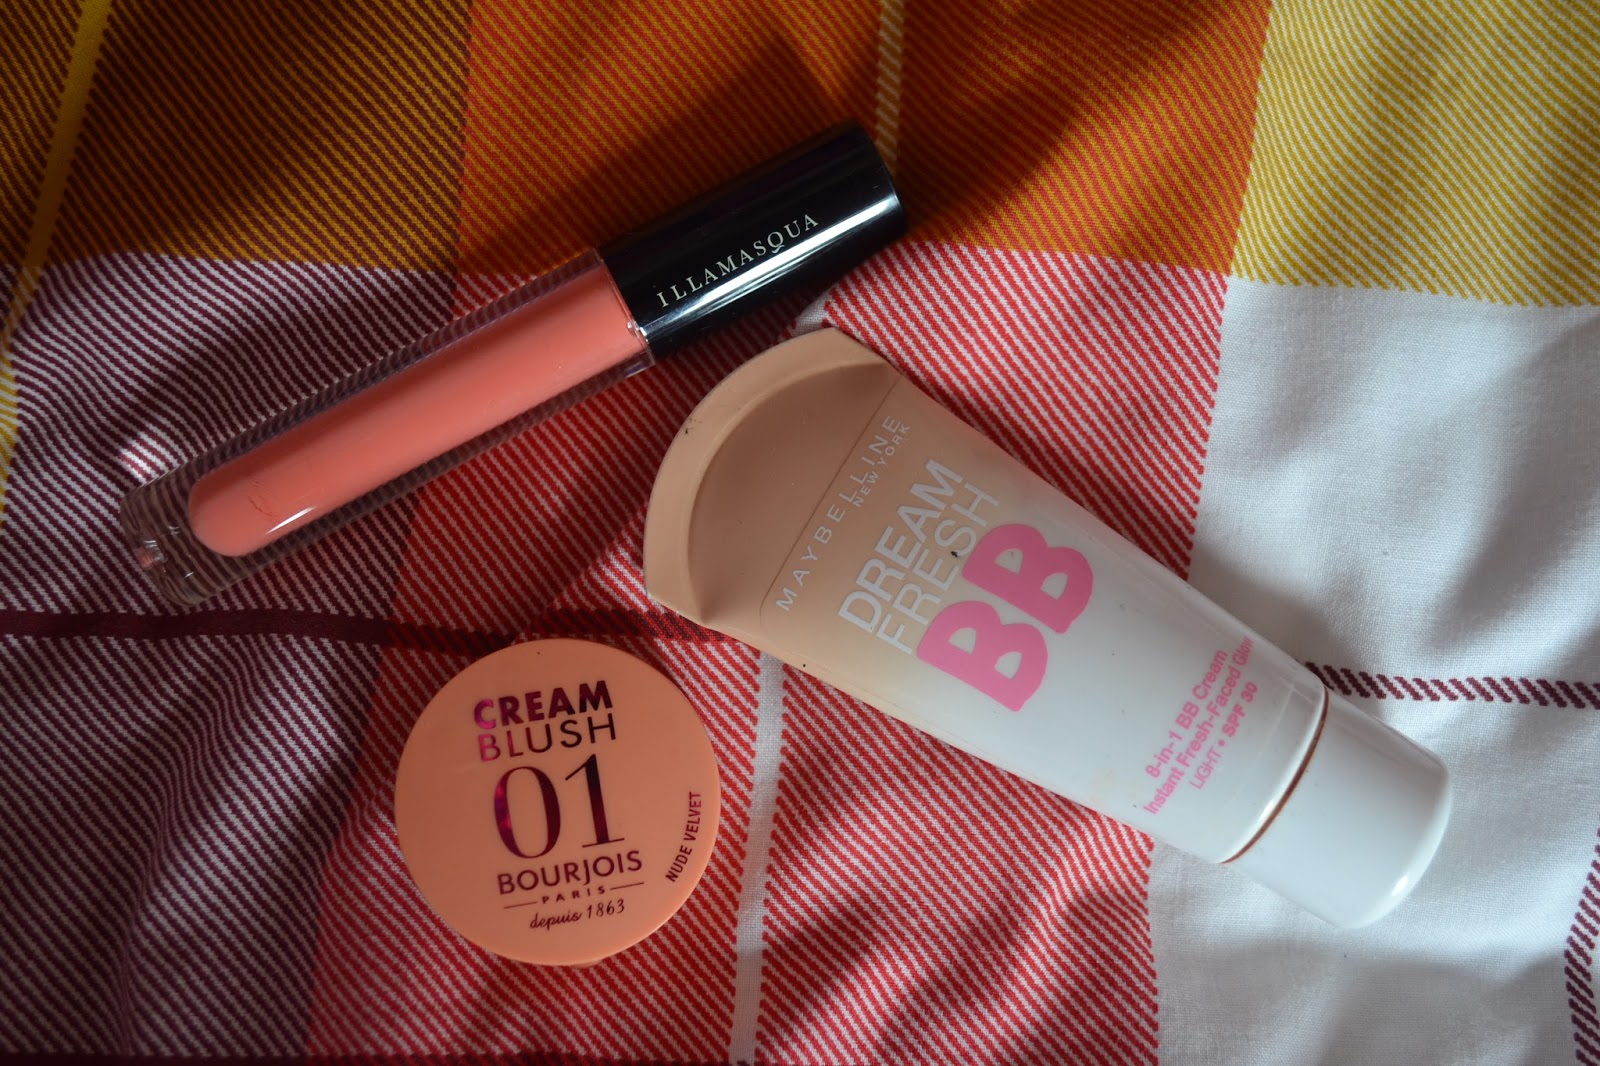 maybelline bb cream, bourjois cream blush, illamasqua matte lip liquid in surrender